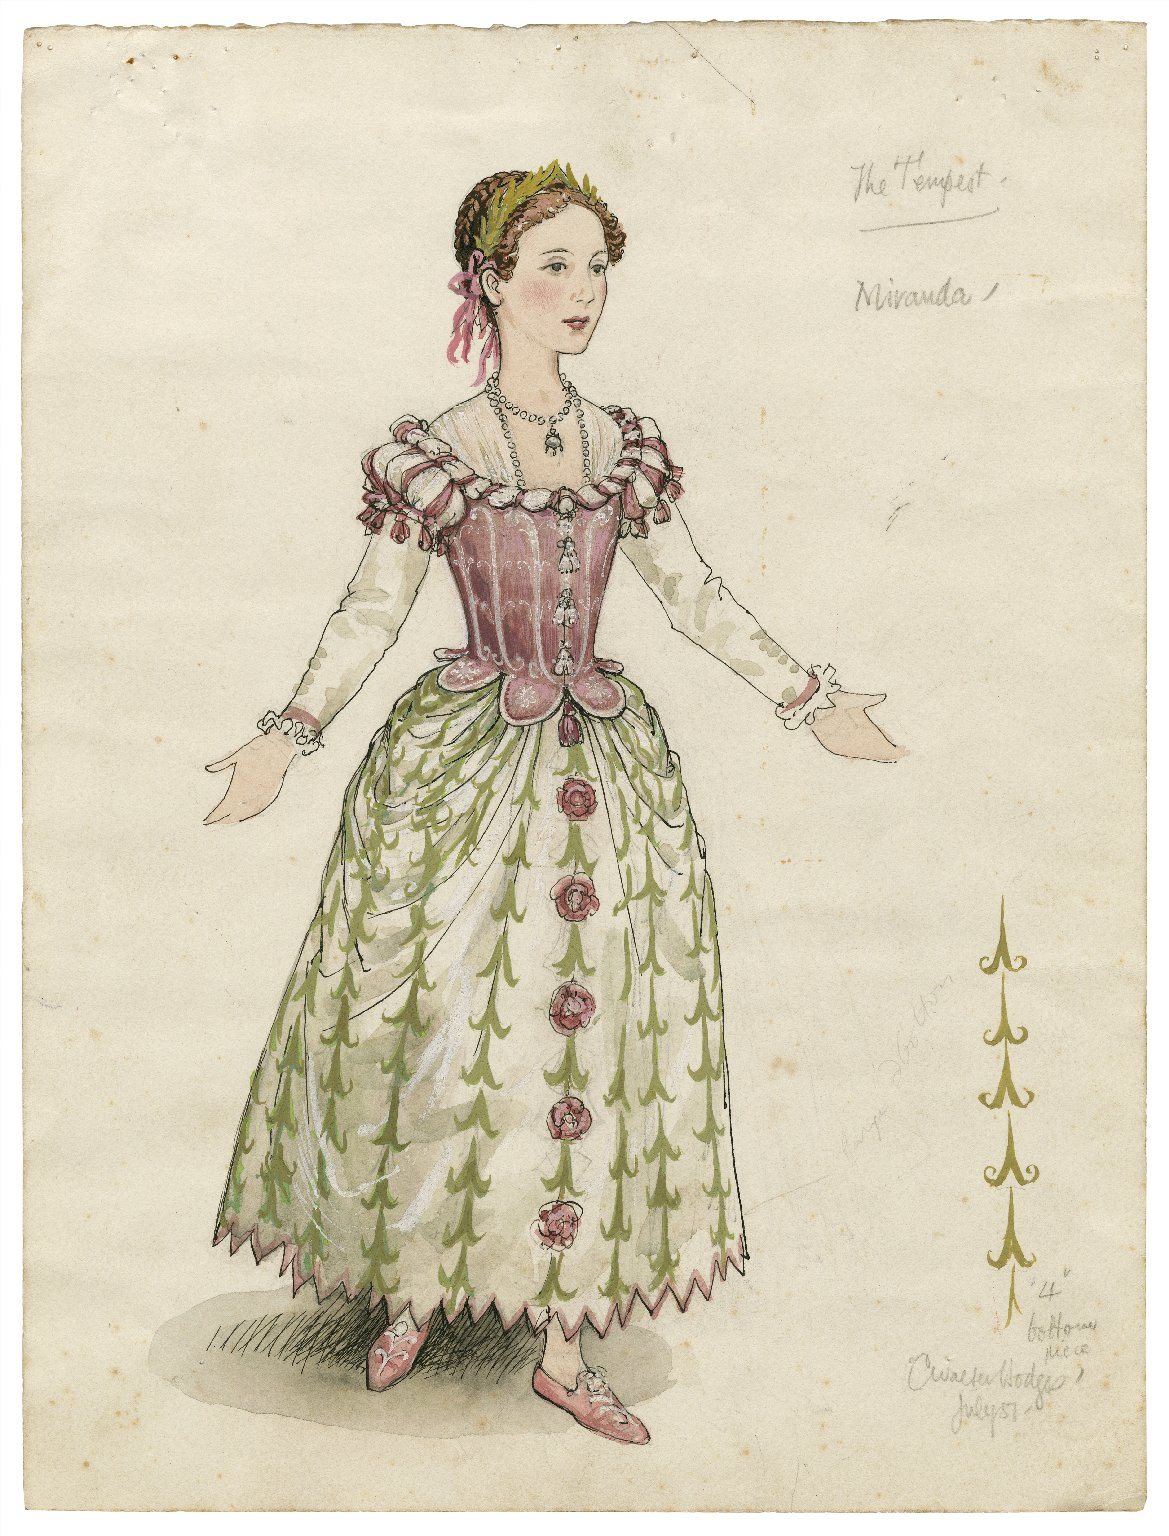 Costume for Miranda, the Tempest